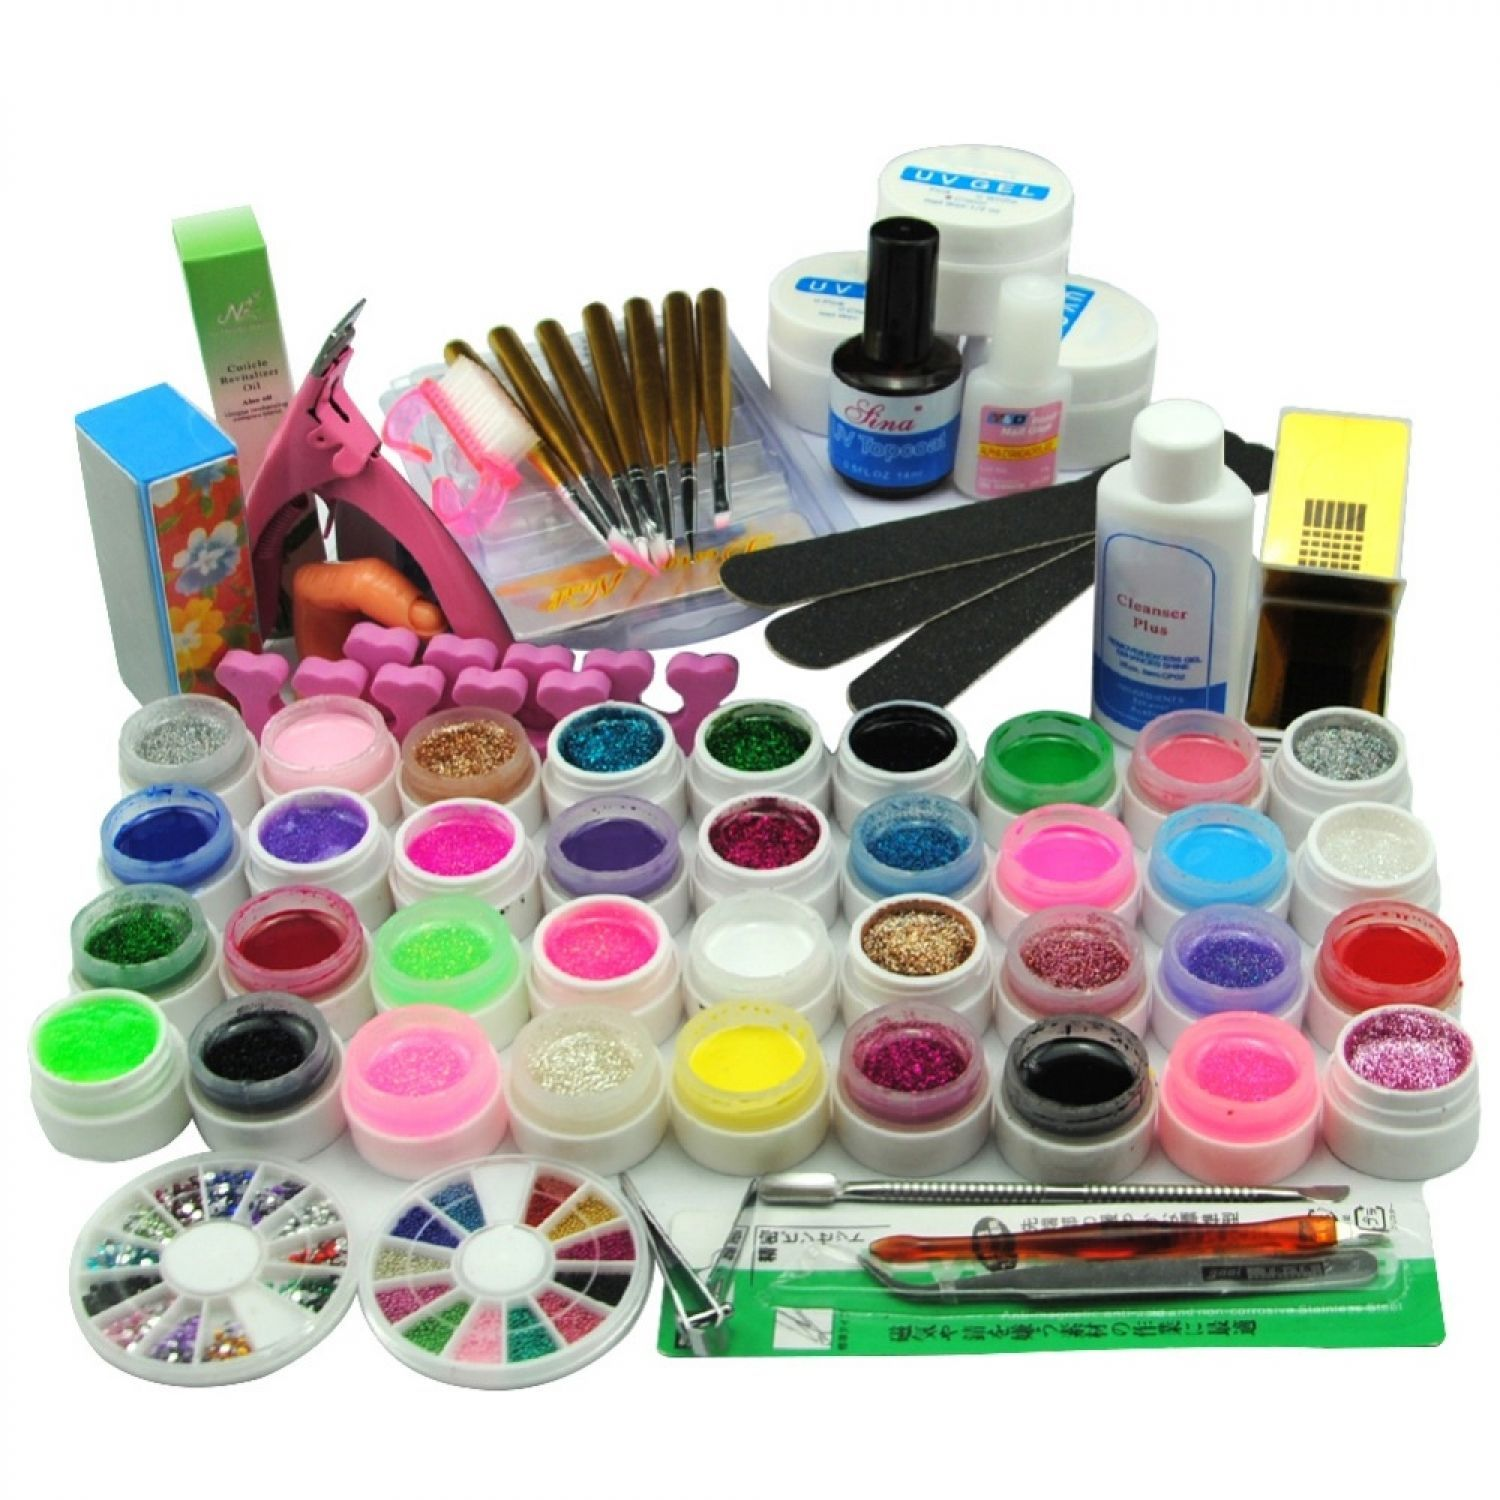 Nail Art Set Manicure Tools Colorful Gel Kit and similar items